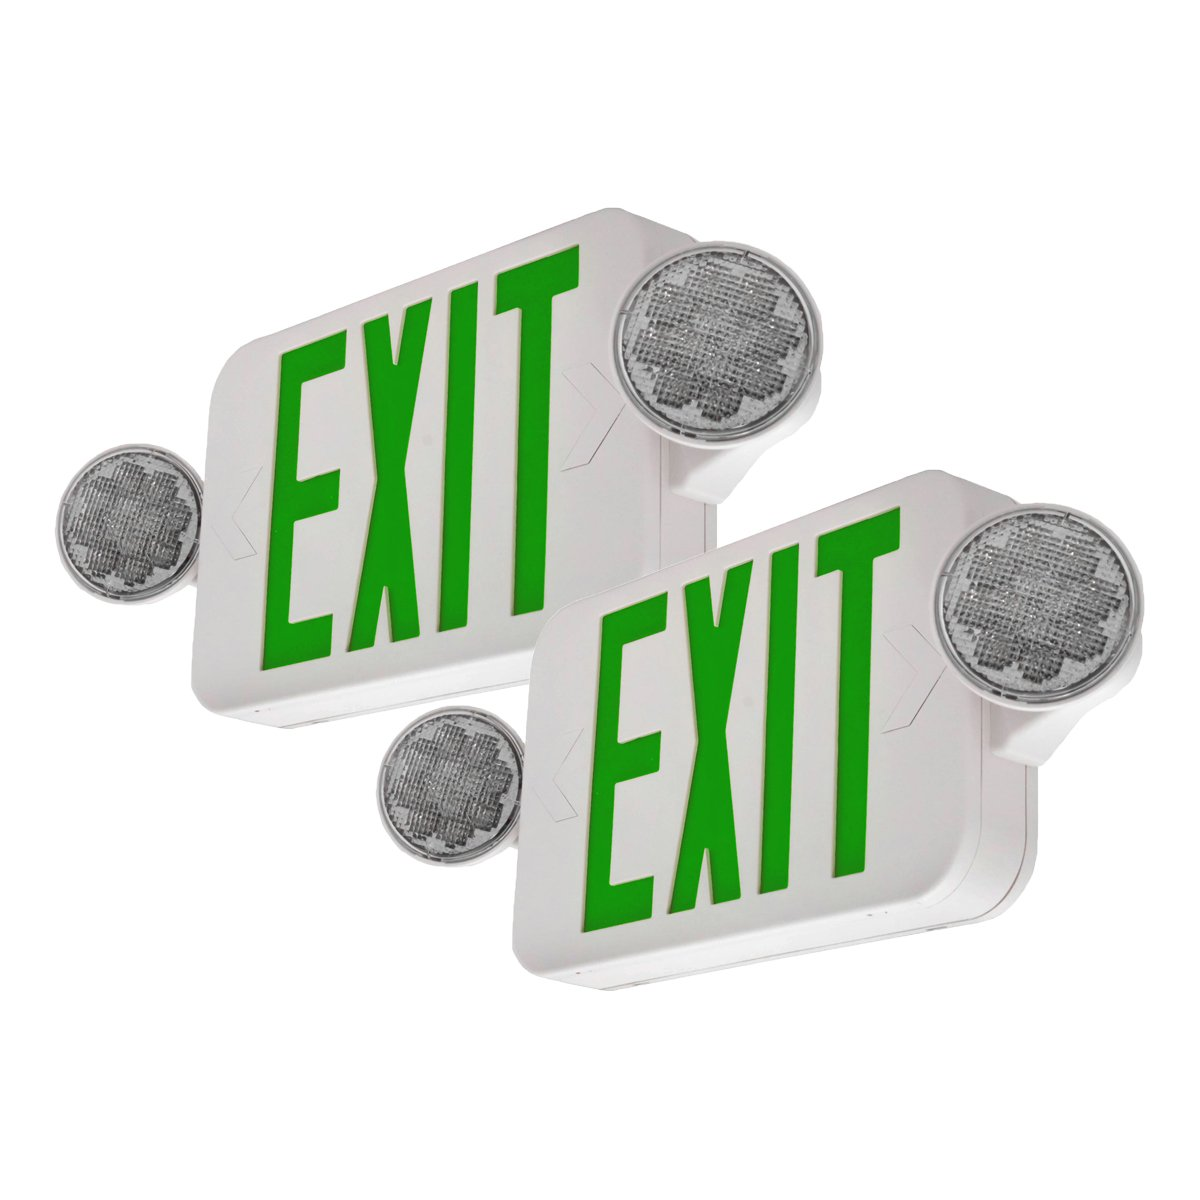 LFI Lights - 2Pack - UL Certified - Hardwired Red Compact Combo Exit Sign Emergency Egress Light - High Output - COMBOGJR2x